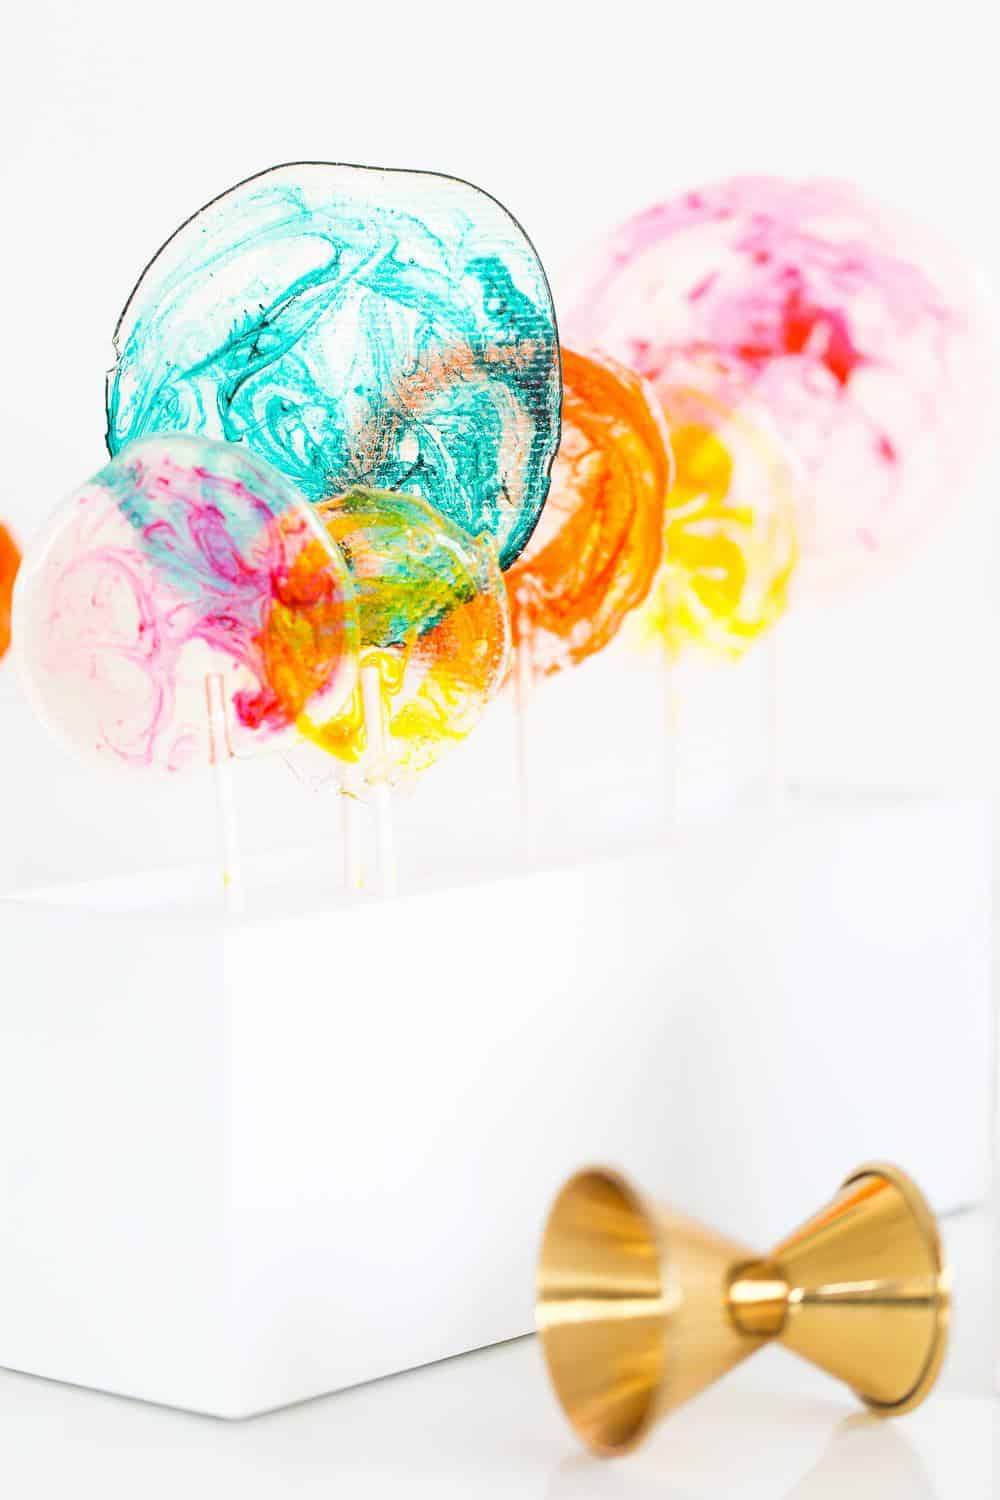 DIY Marble Spiked Lollipops by Sugar & Cloth Top Houston Lifestyle Blogger Ashley Rose #lollipops #diy #recipe #marble #spiked #tequila #alcohol #adult #candy #sweets